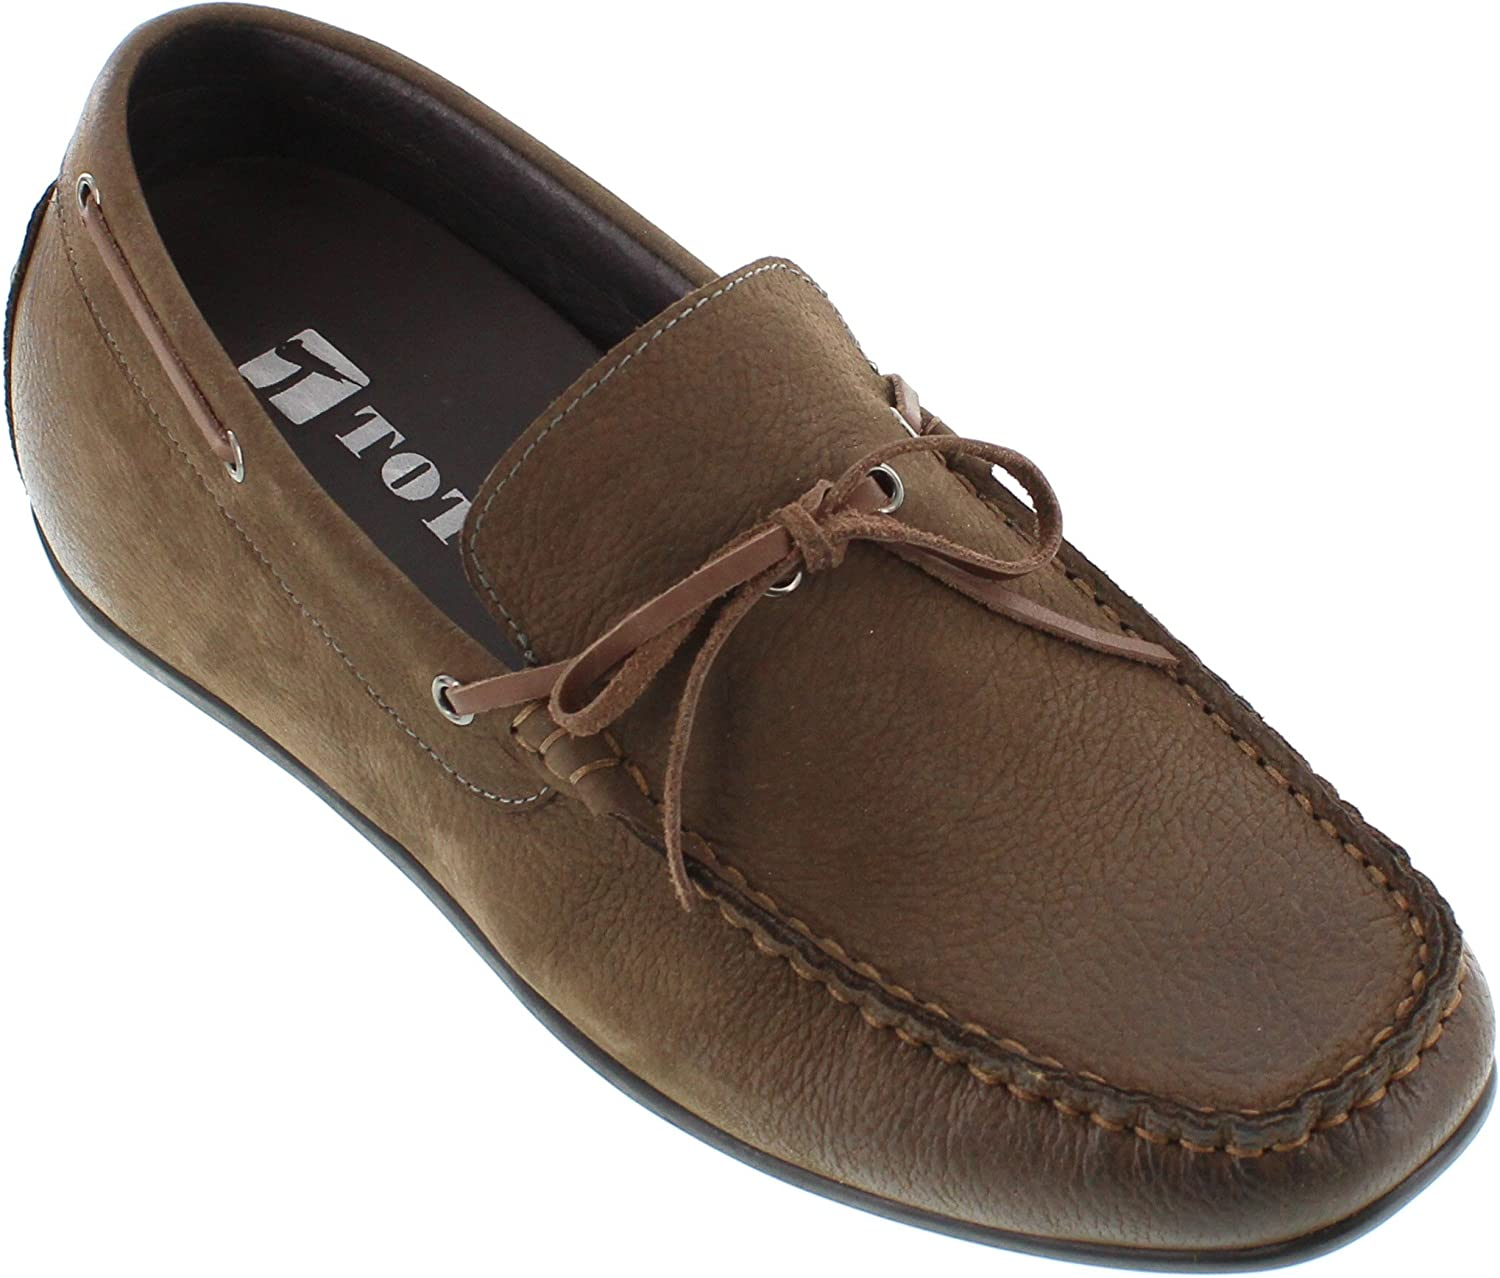 Toto Men's Invisible Height Increasing Elevator shoes - Nubuck Khaki Leather Slip-on Lightweight Casual Loafers - 2.4 Inches Taller - H32602